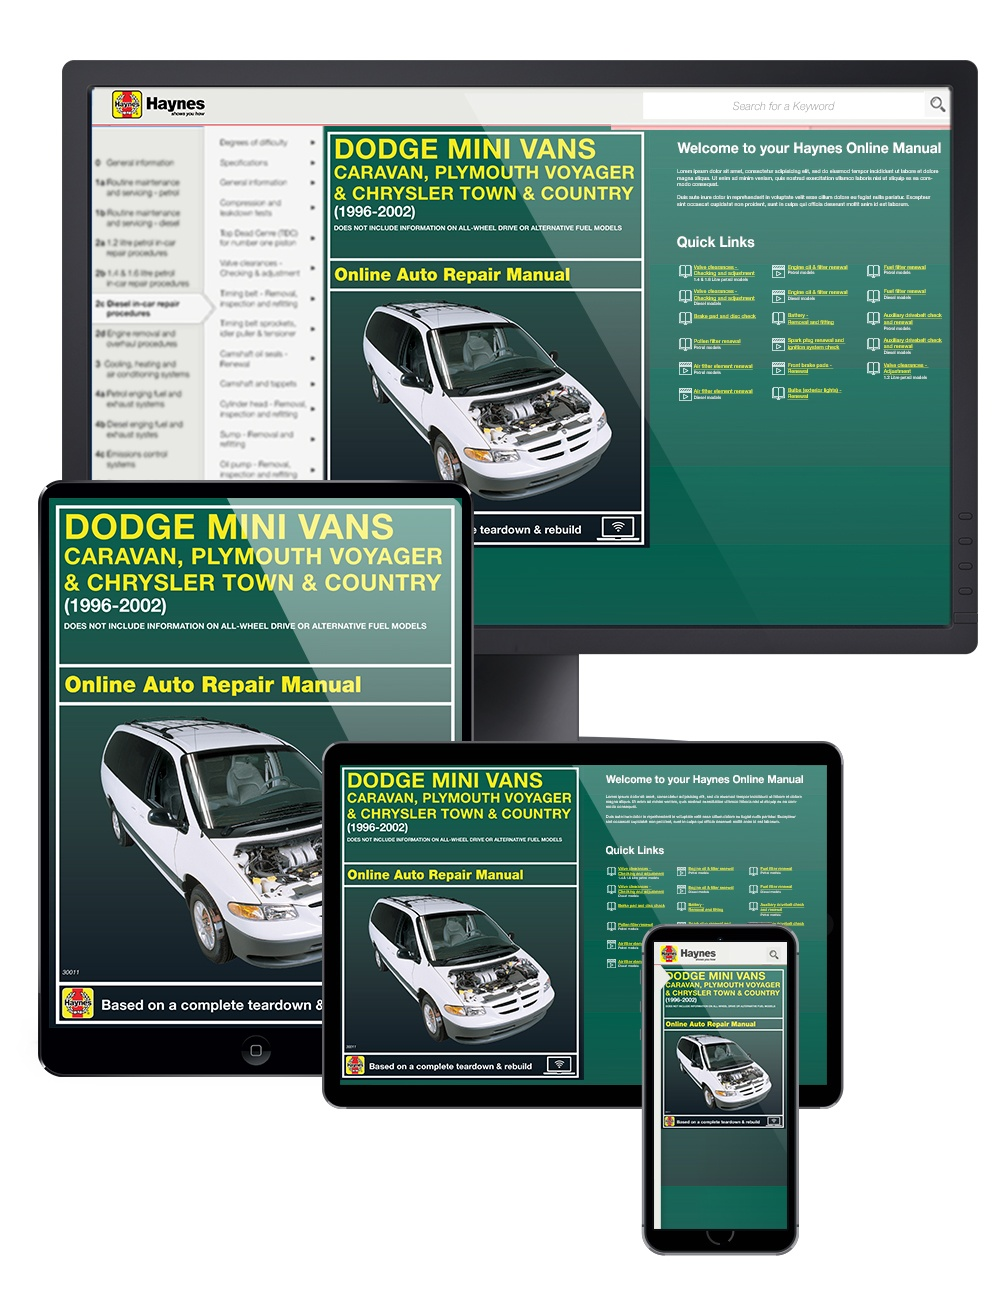 Manual cover for Dodge Caravan/Grand Caravan, Chrysler Grand Voyager 1996-2002 Haynes Online Manual